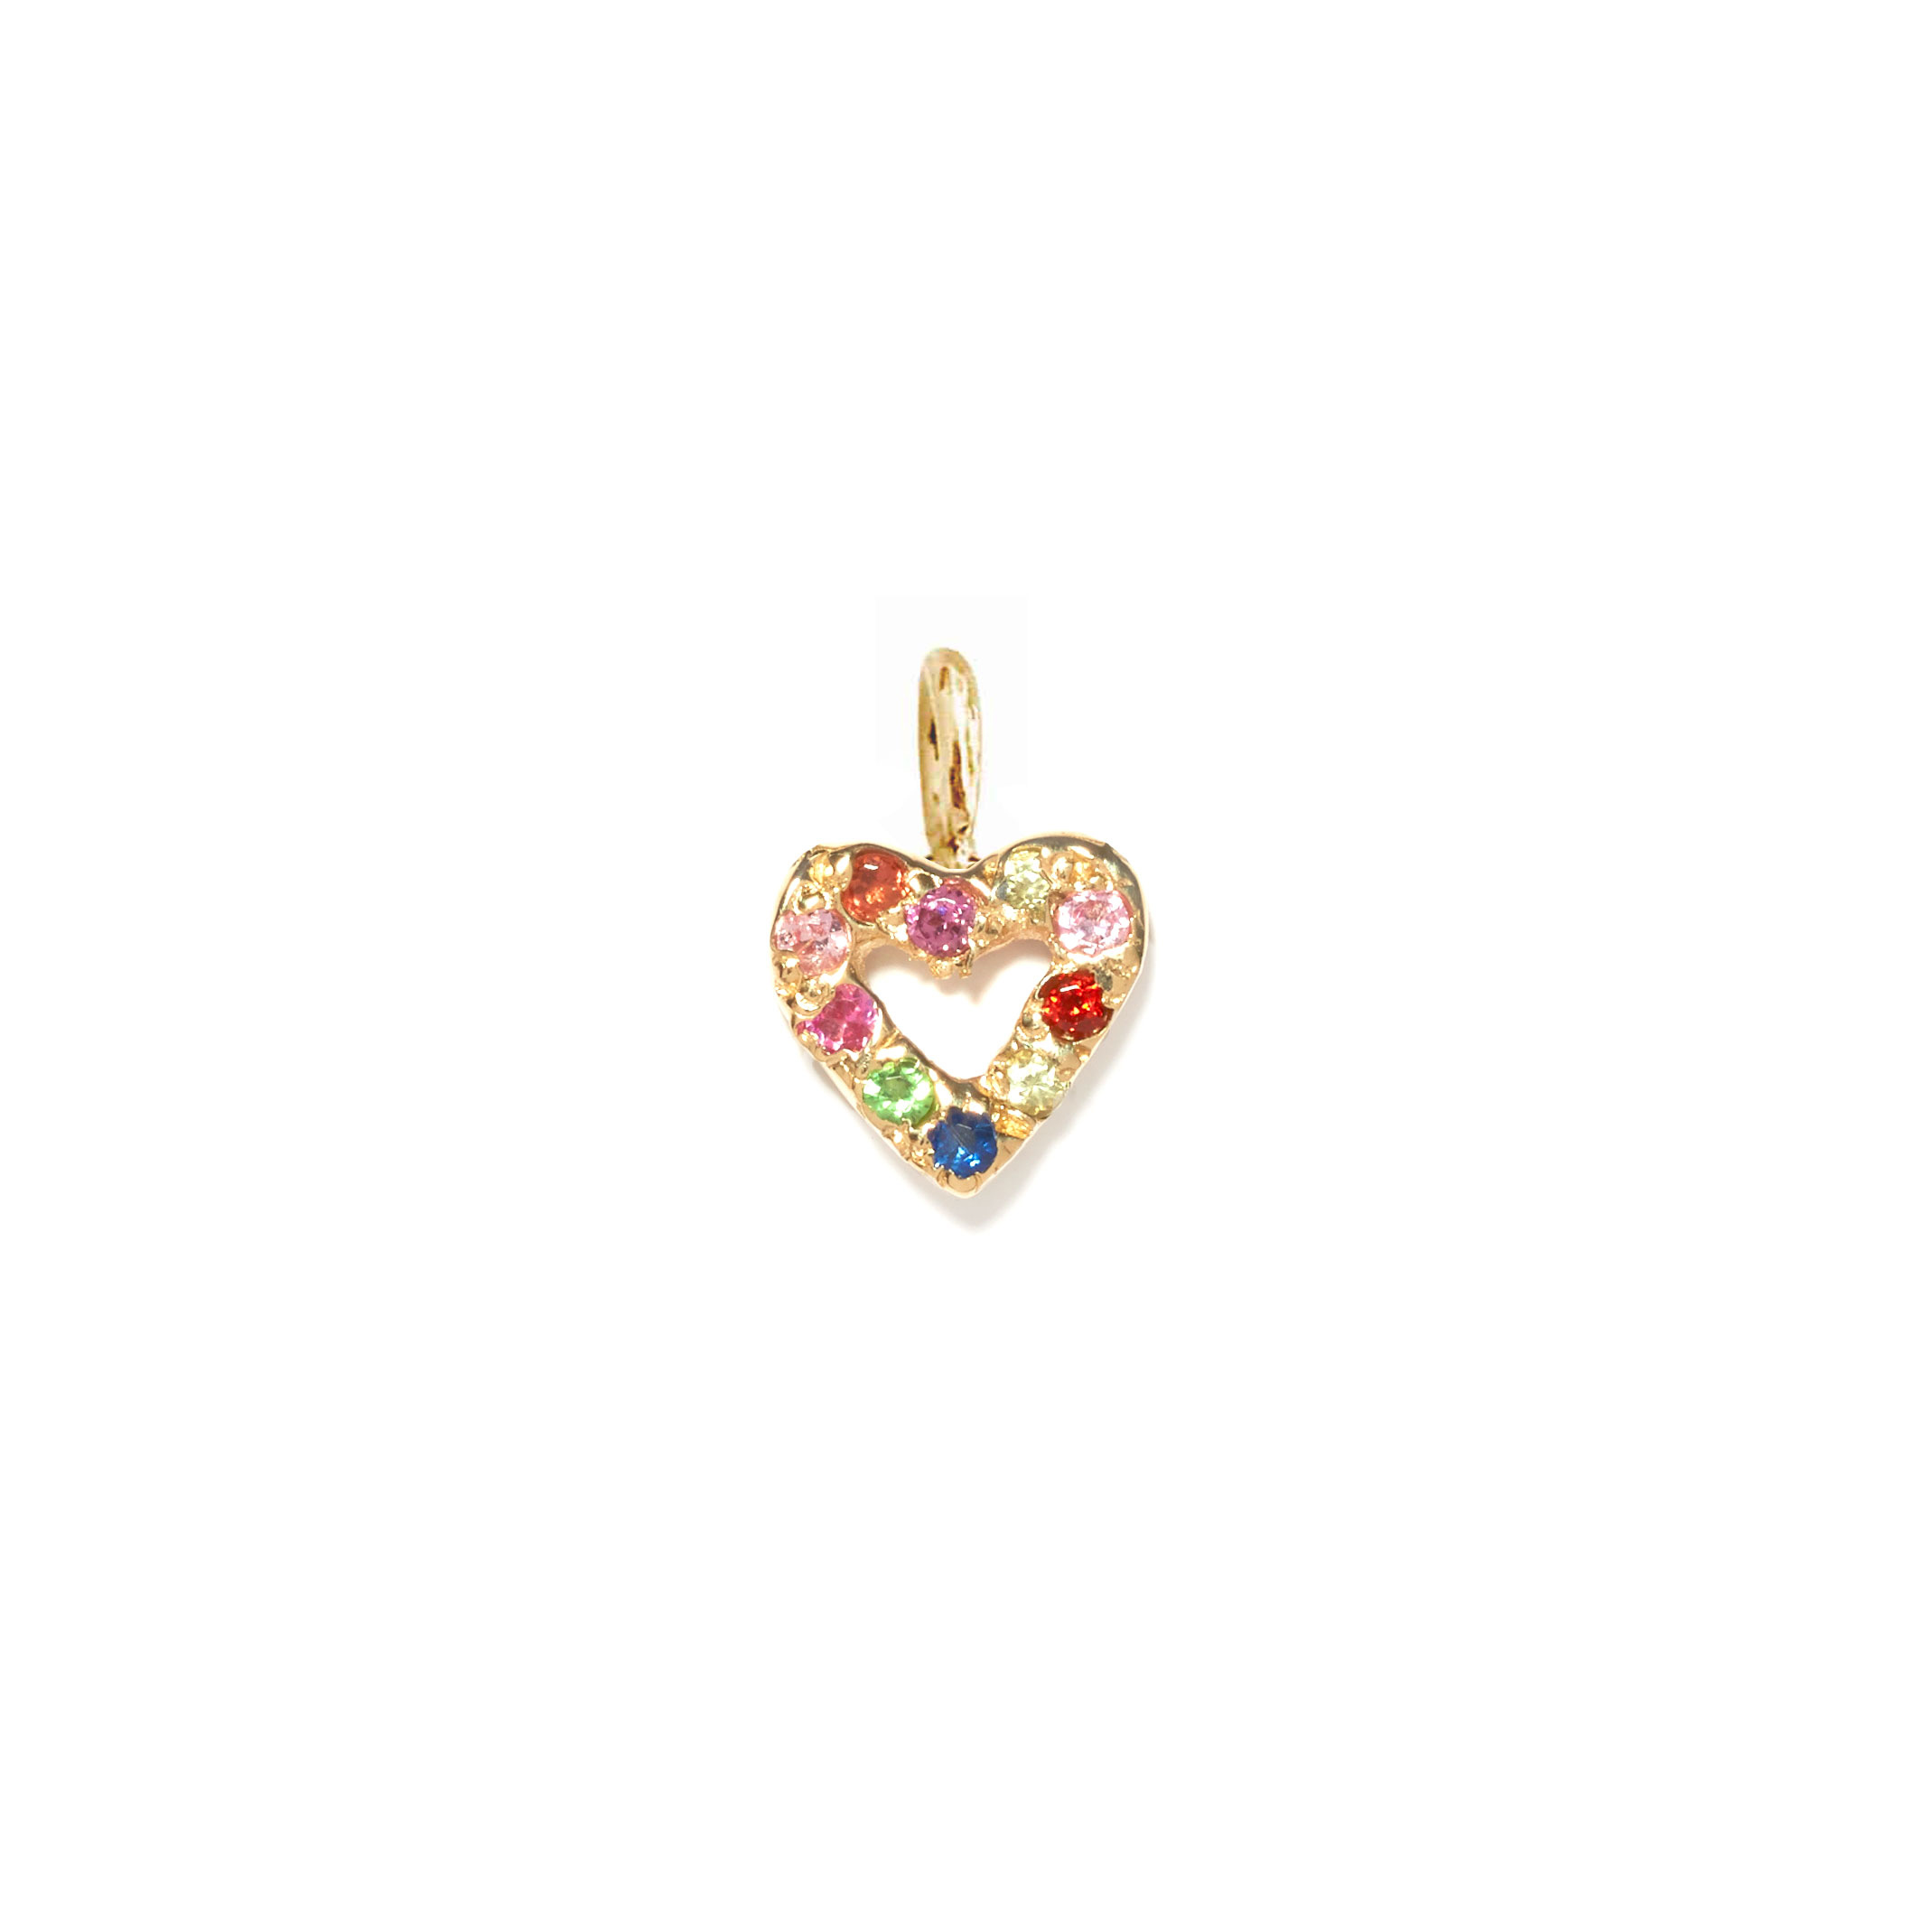 Heart Charm Jewel Collection 14k Yellow Gold